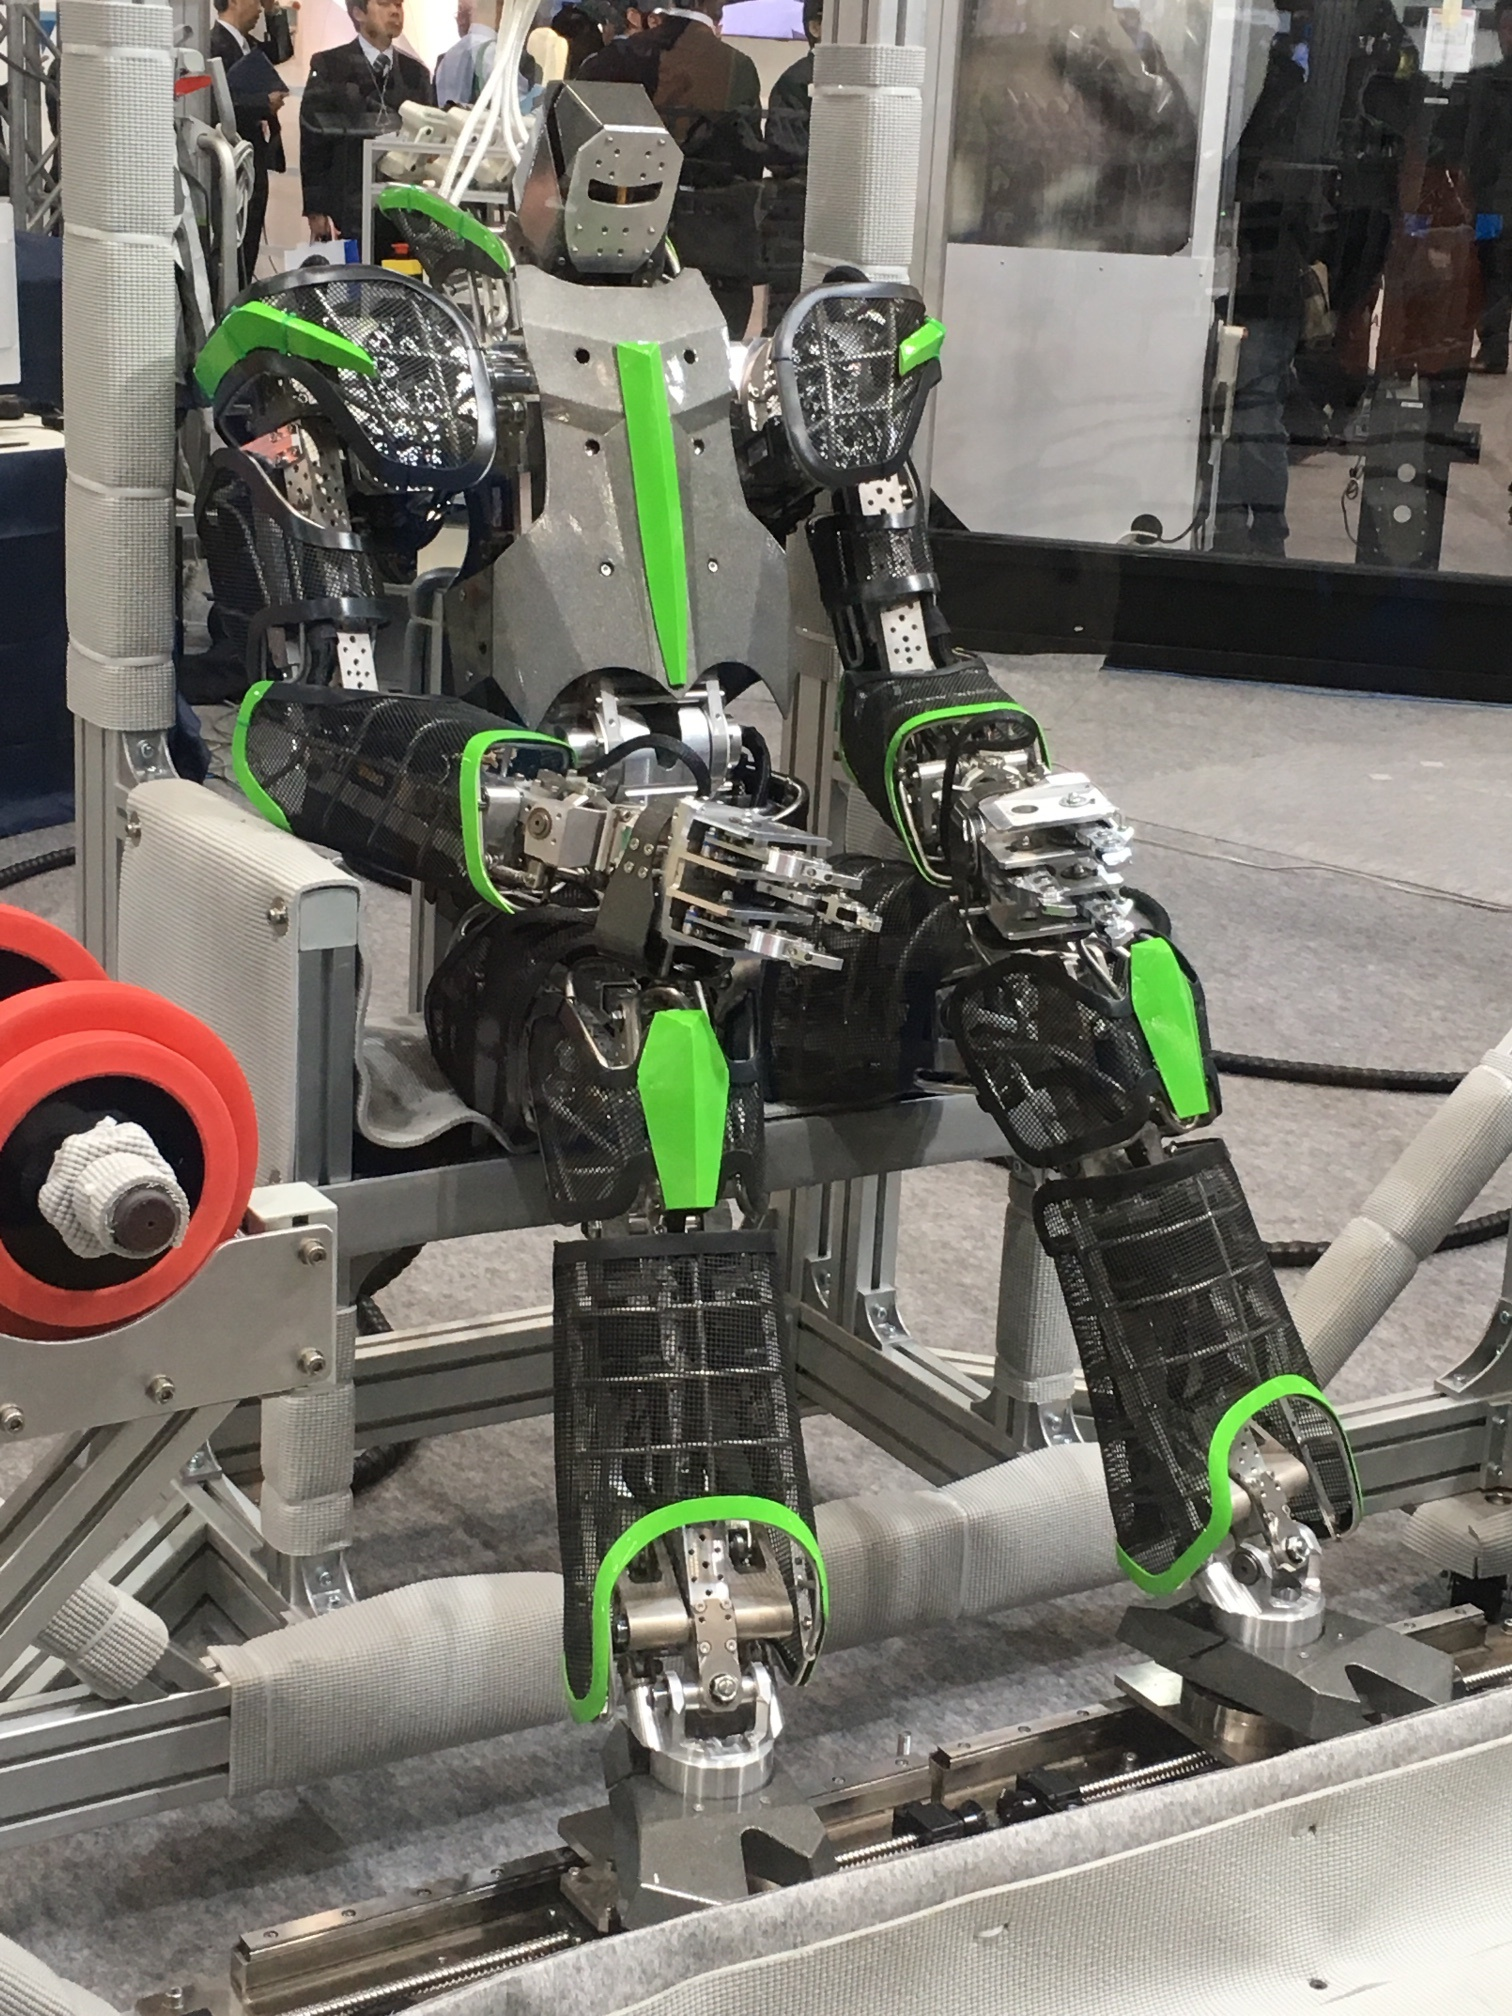 Kawasaki robot chilling out